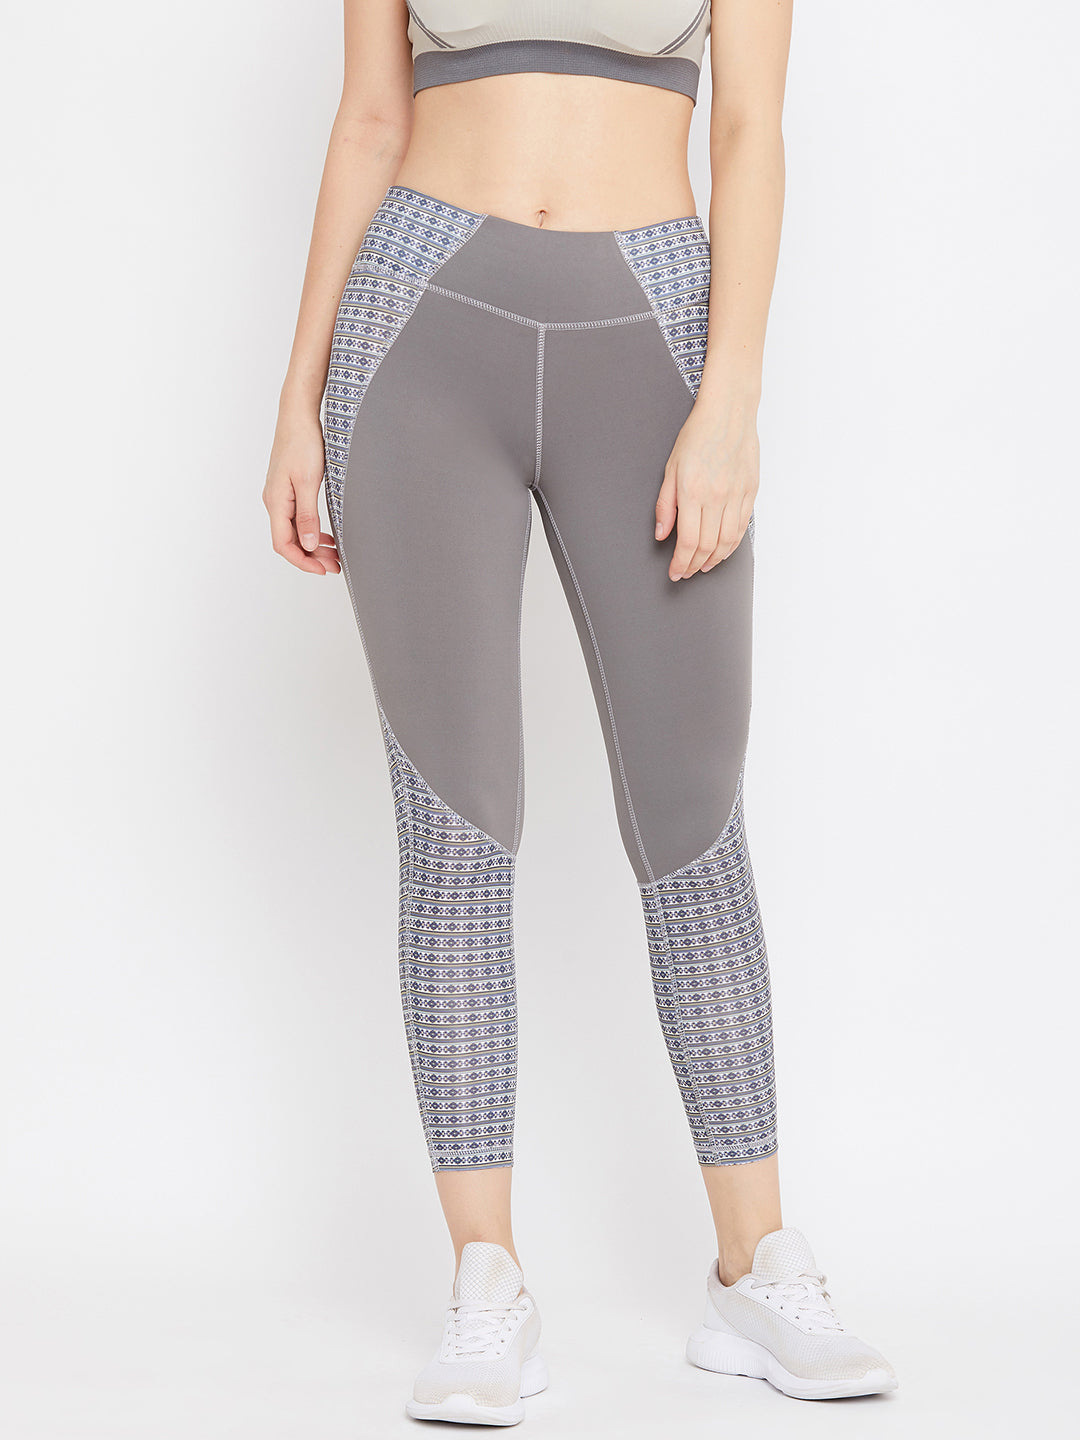 JUMP USA Women Grey Printed Active Wear Tights